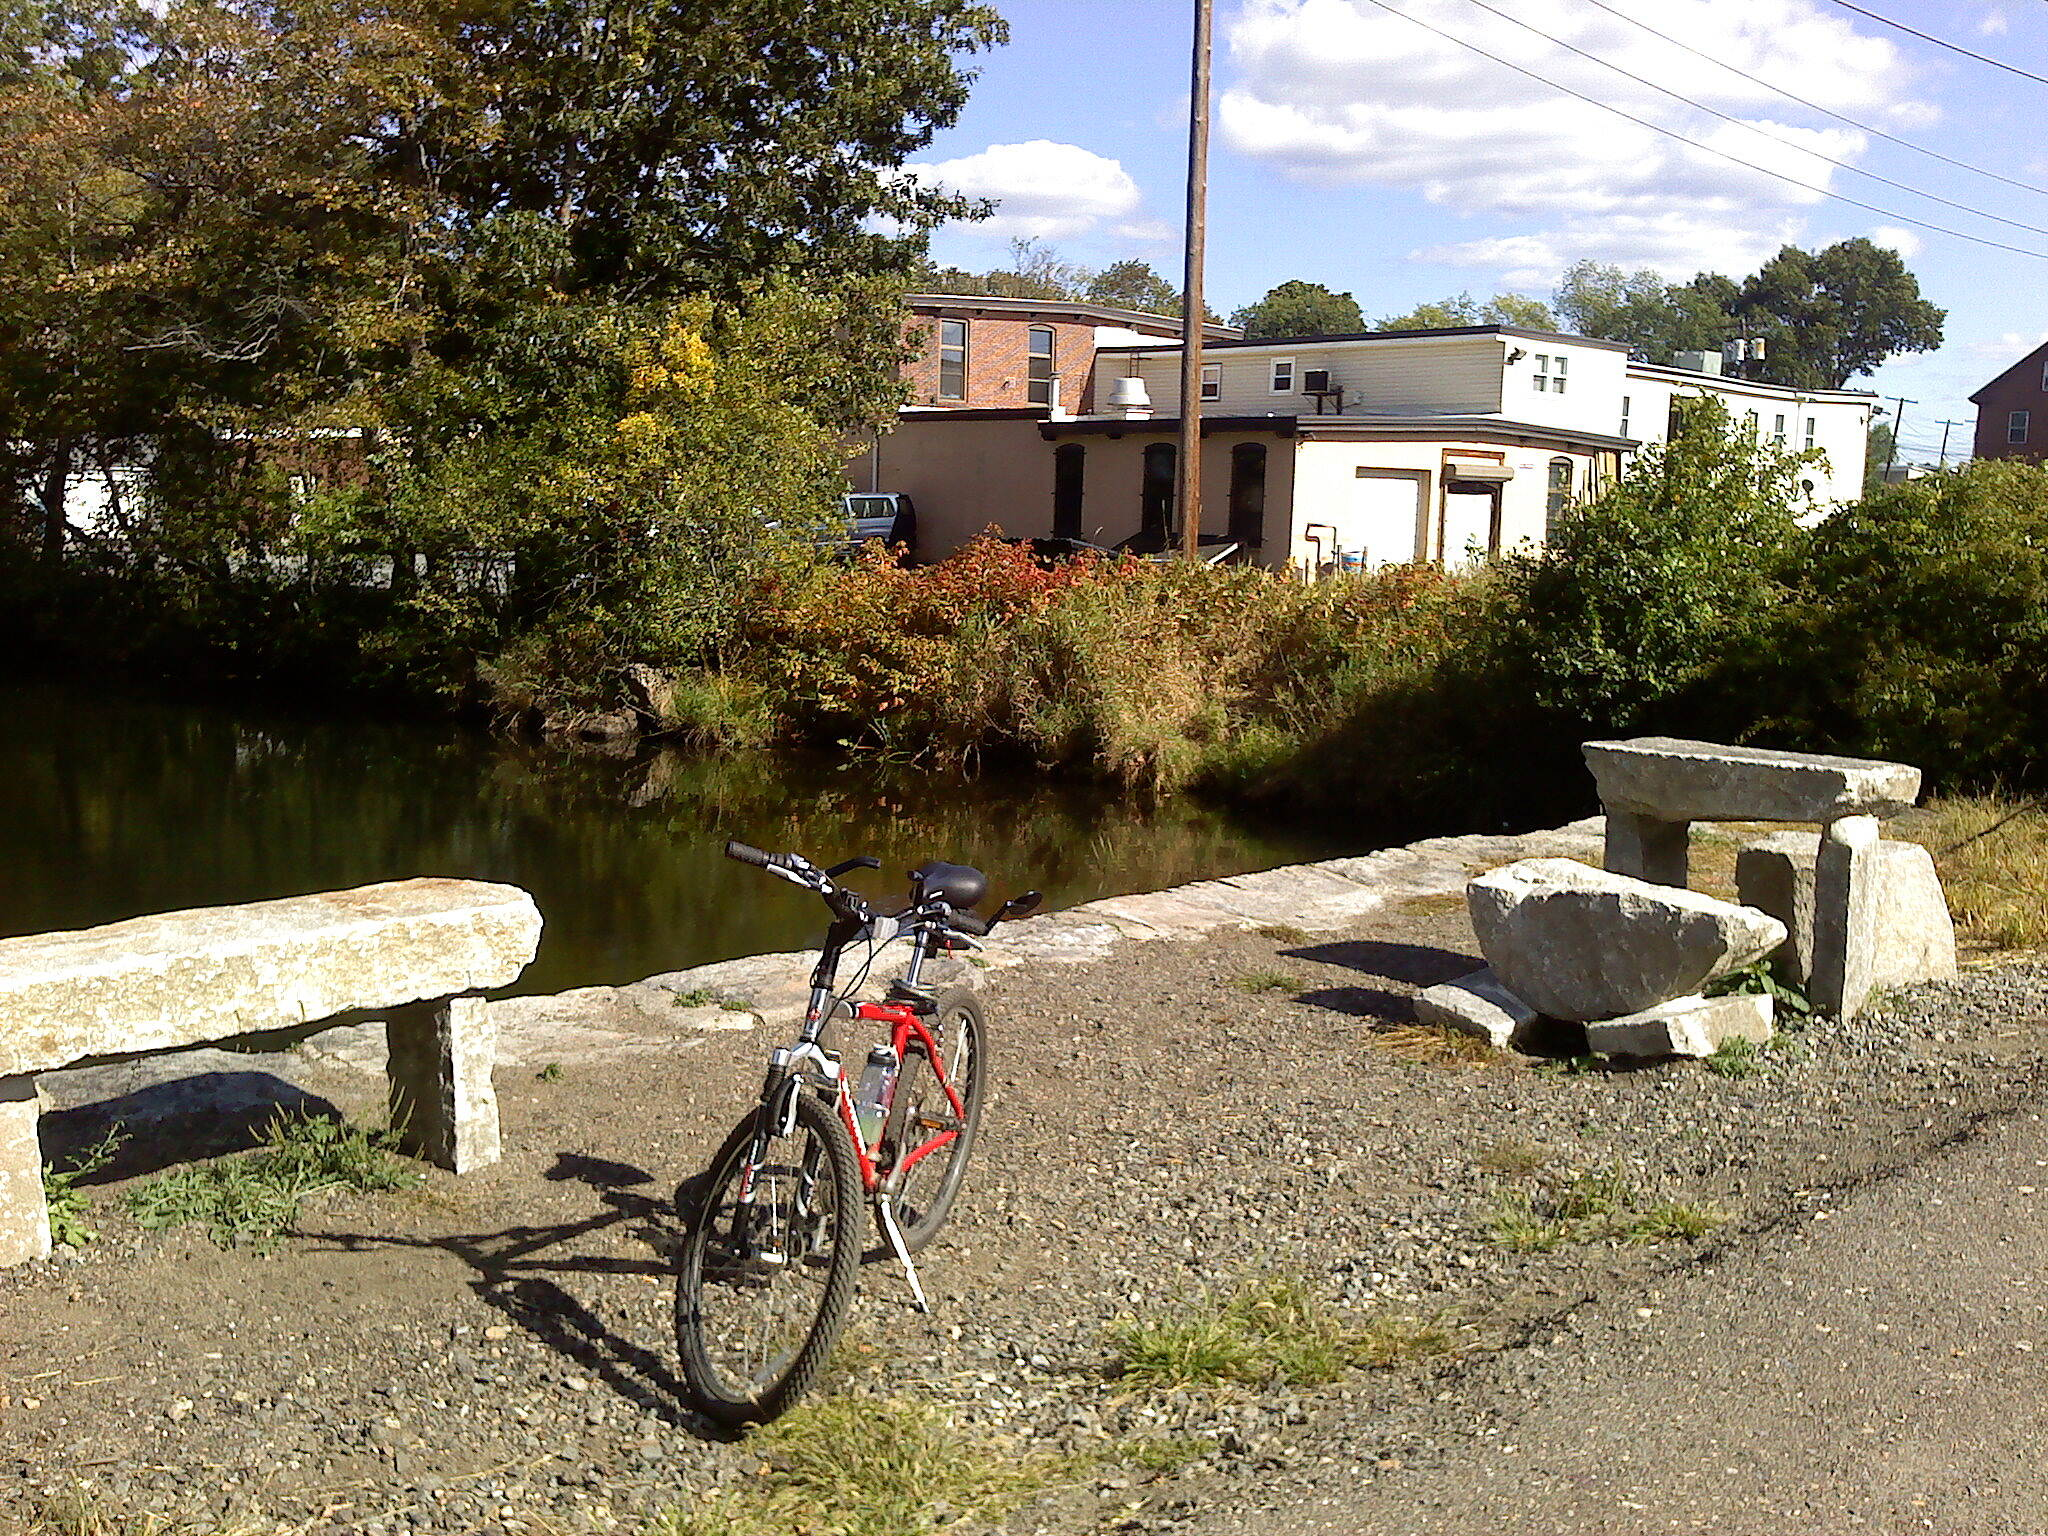 Methuen Rail Trail Benchhenge